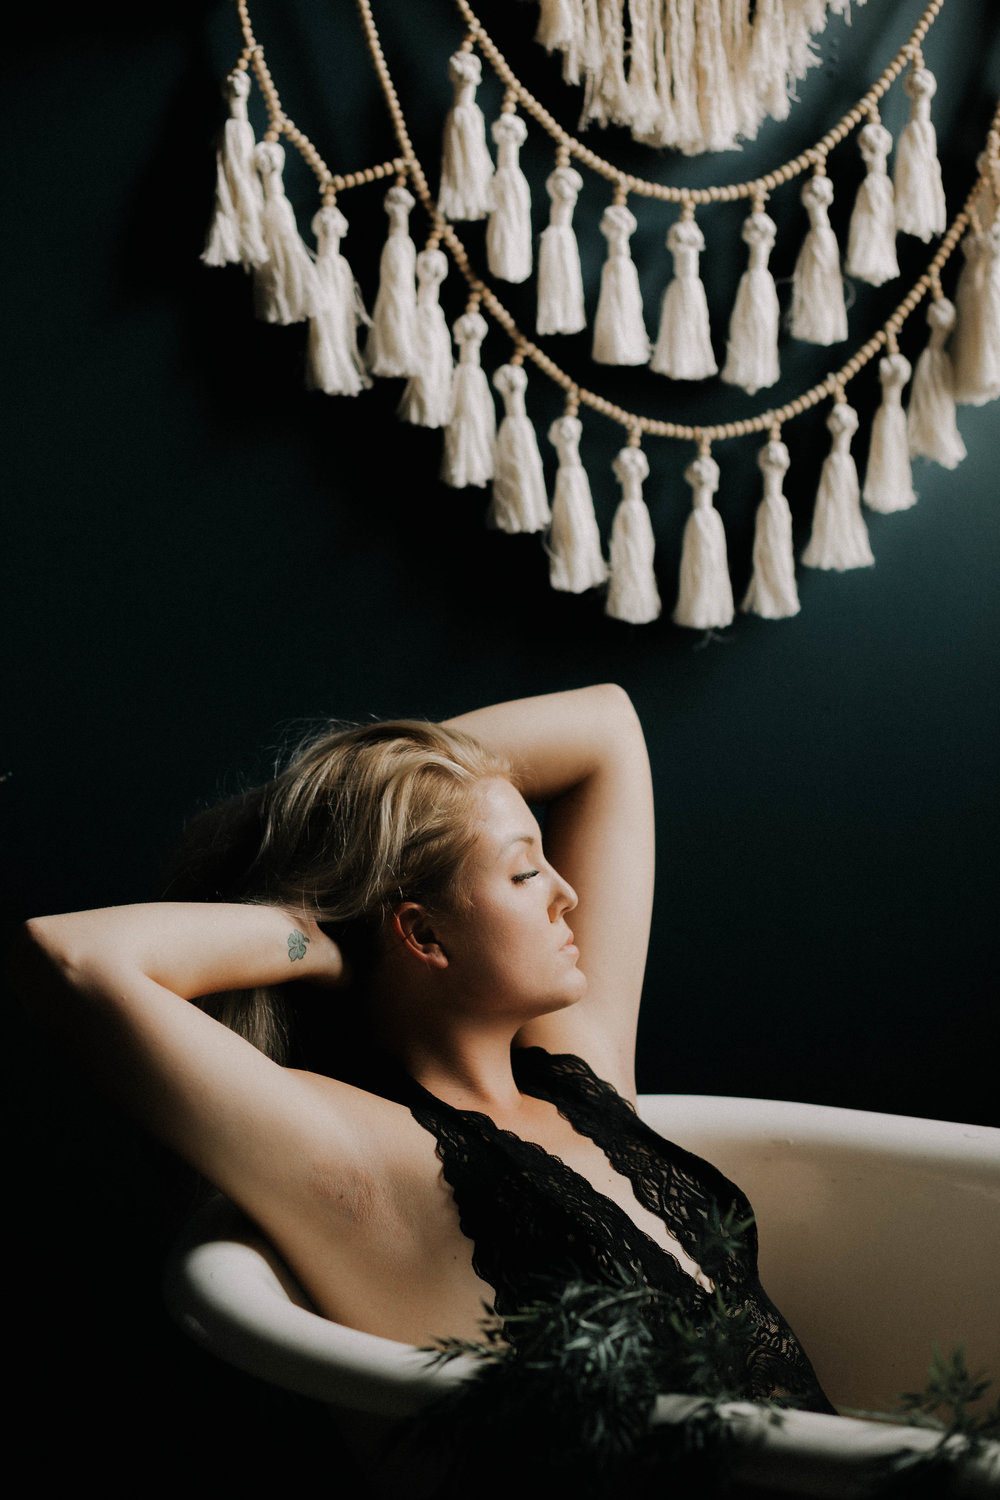 Illuminated Belles - Boudoir & Milk Bath